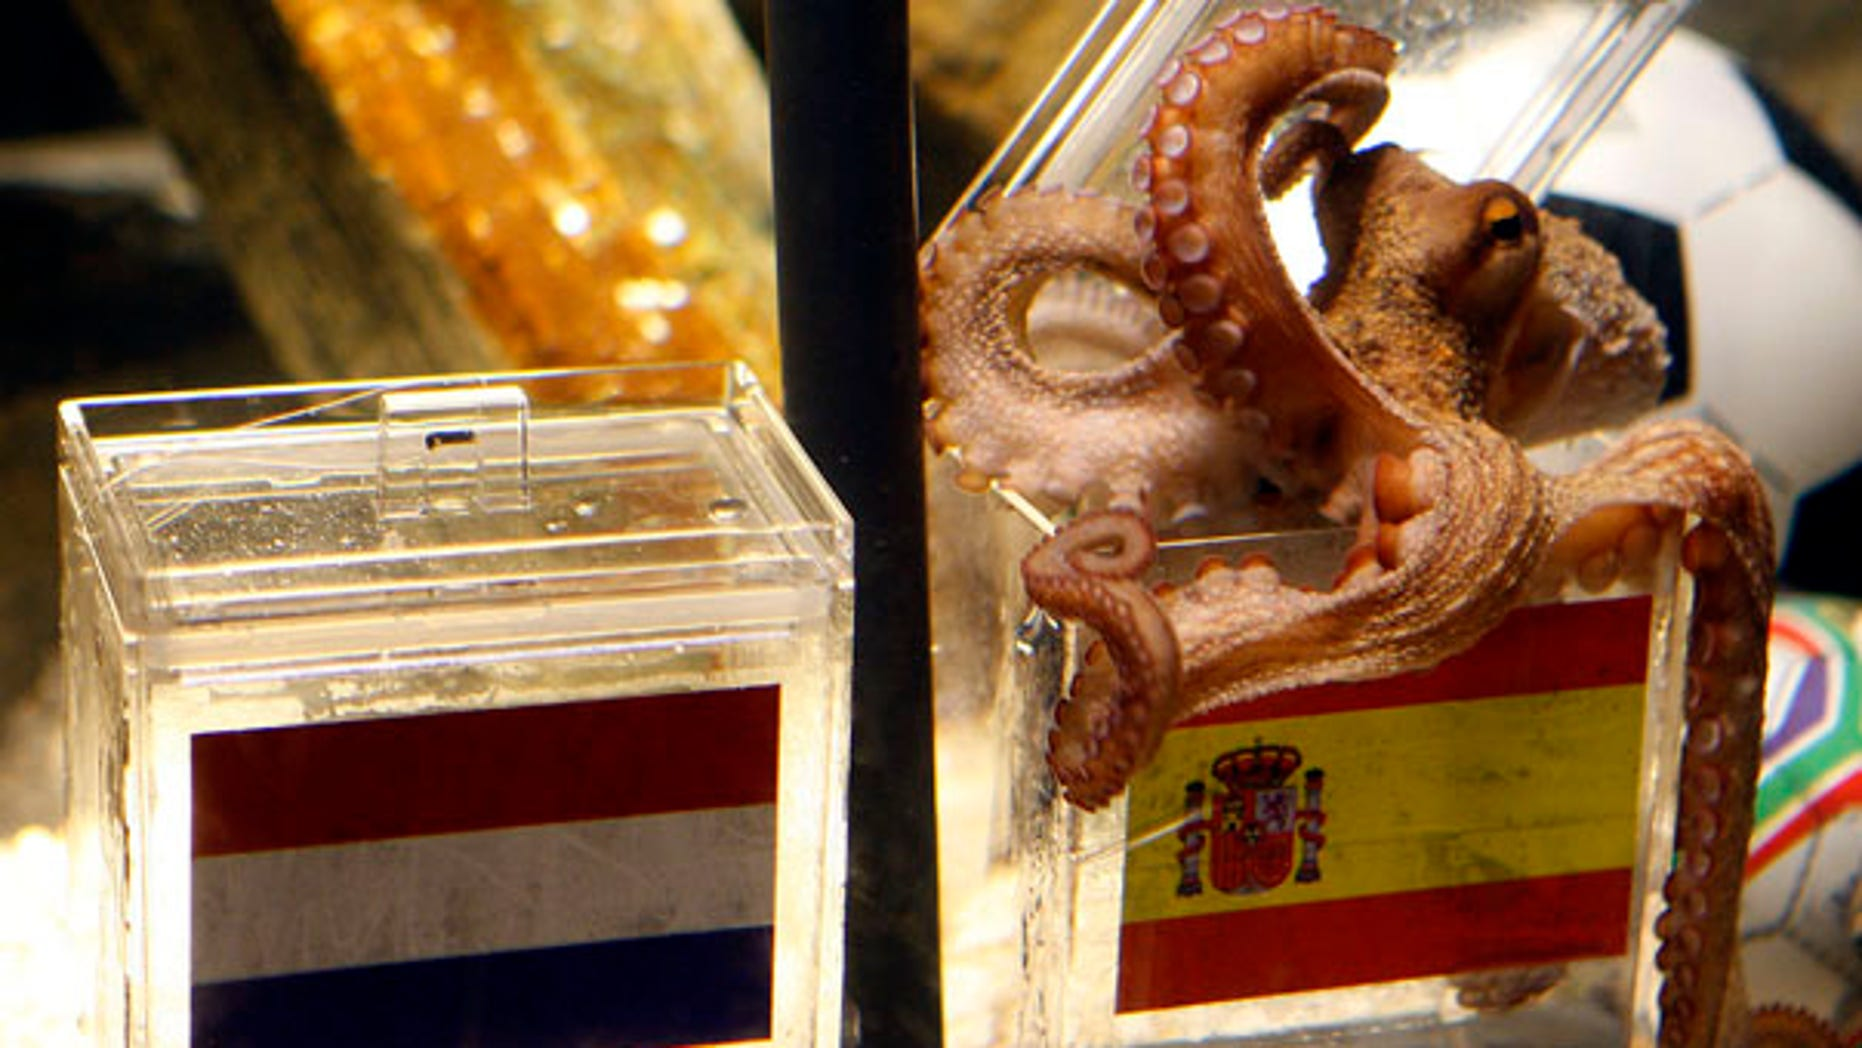 Octopus oracle Paul chooses a mussel from a glass tank marked with a Spanish flag, next to a box with a flag of Holland, in the SeaLife Aquarium in Oberhausen, Germany, Friday, July 9, 2010. Paul predicts Spain will beat Holland and win the World Cup. (AP Photo/dapd, Roberto Pfeil)